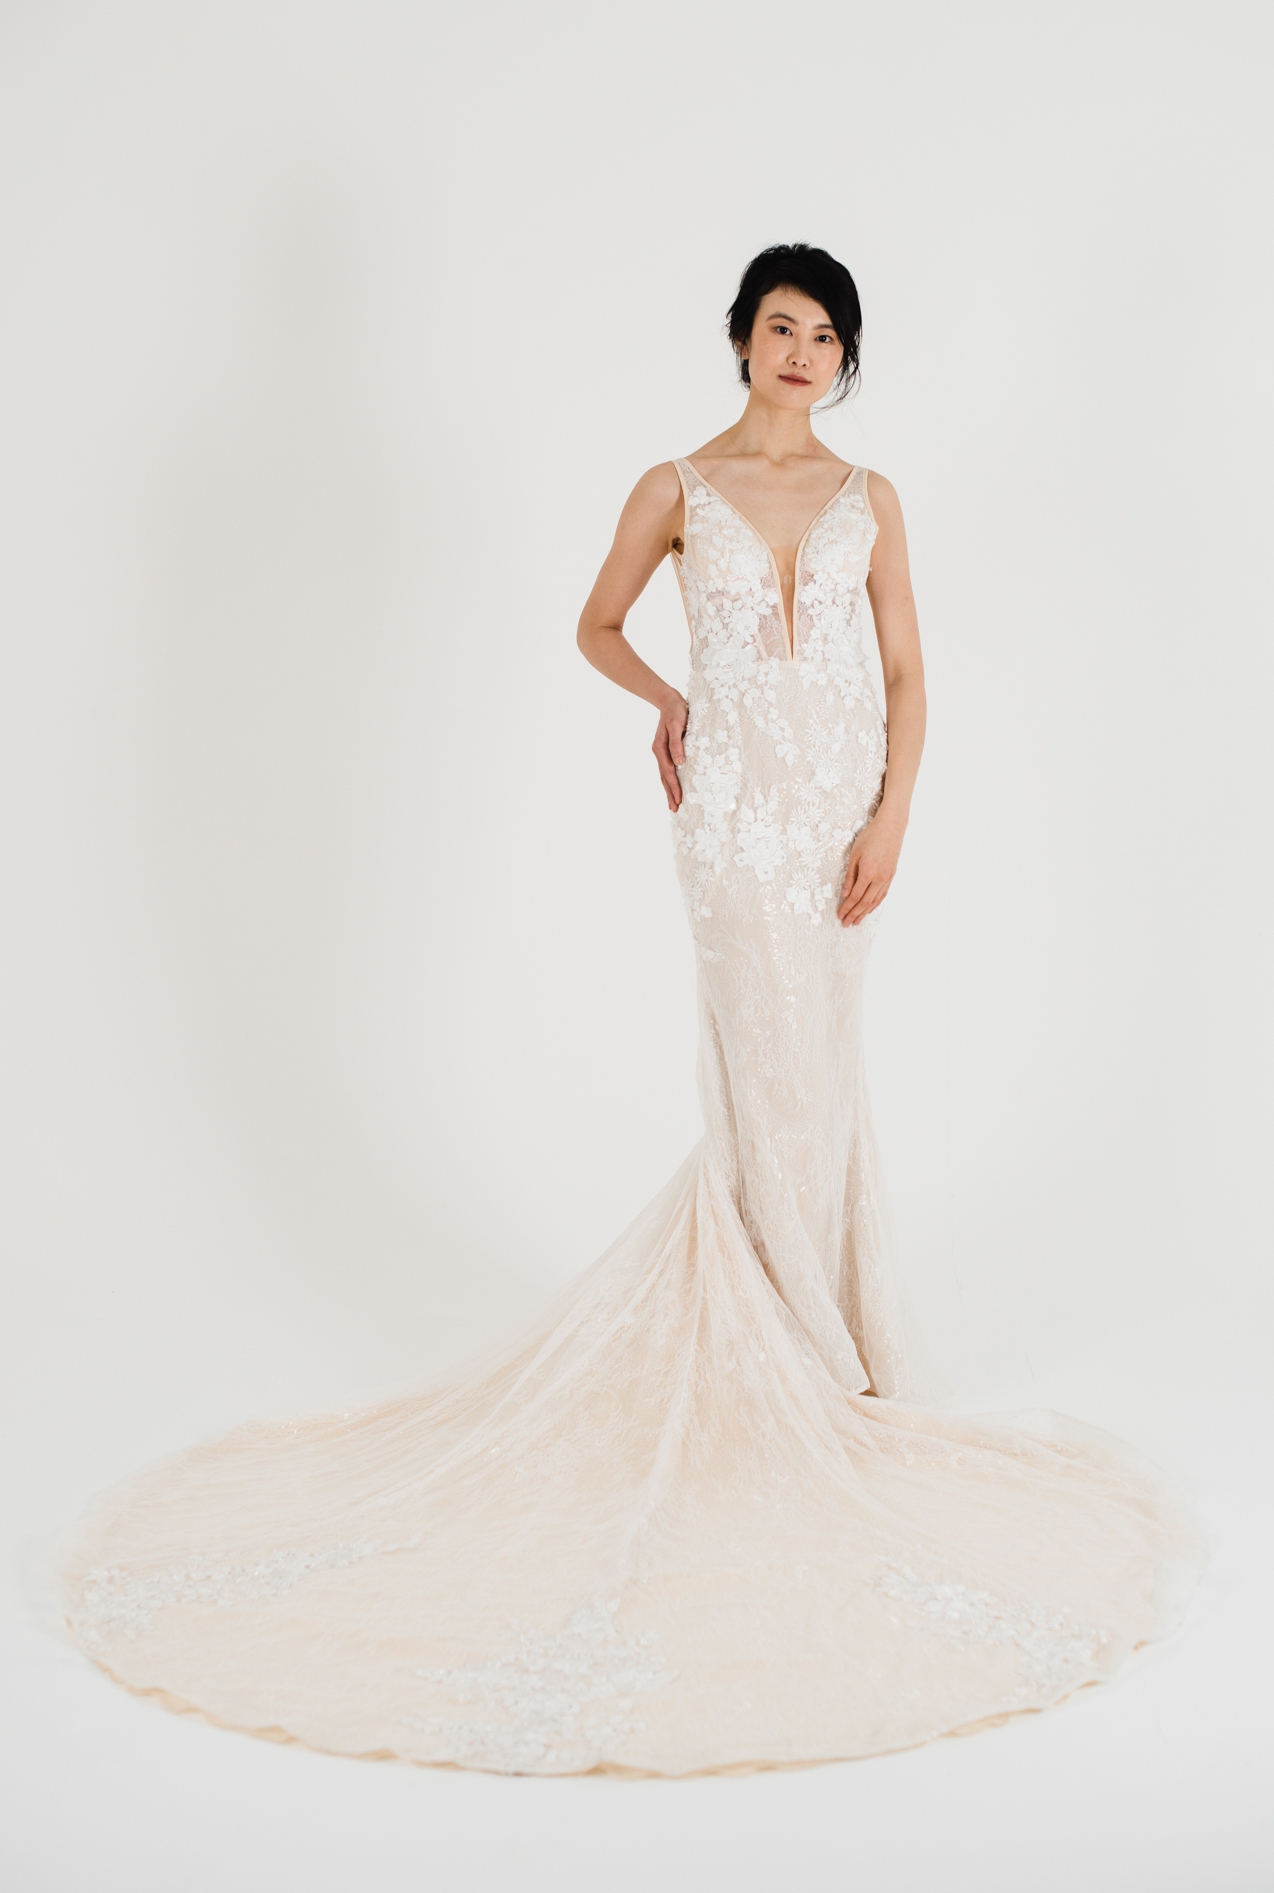 peach toned graceful wedding dress mermaid fit and court train